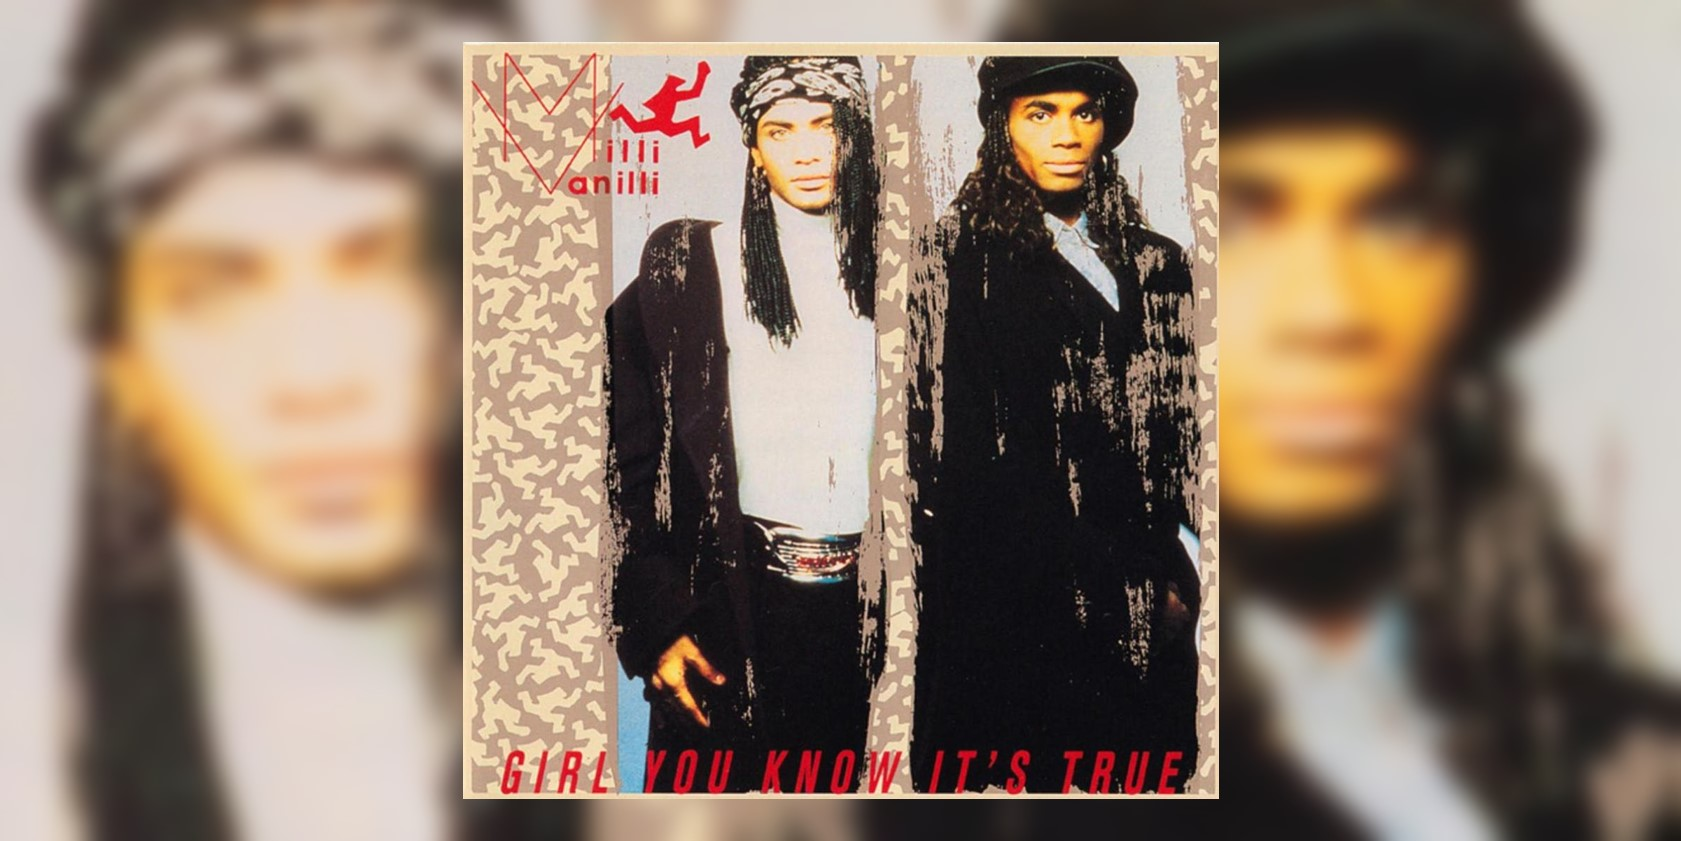 9f7e6d0c9 10 FAST FACTS: Milli Vanilli's Infamous Debut Album 'Girl You Know It's  True' Turns 30